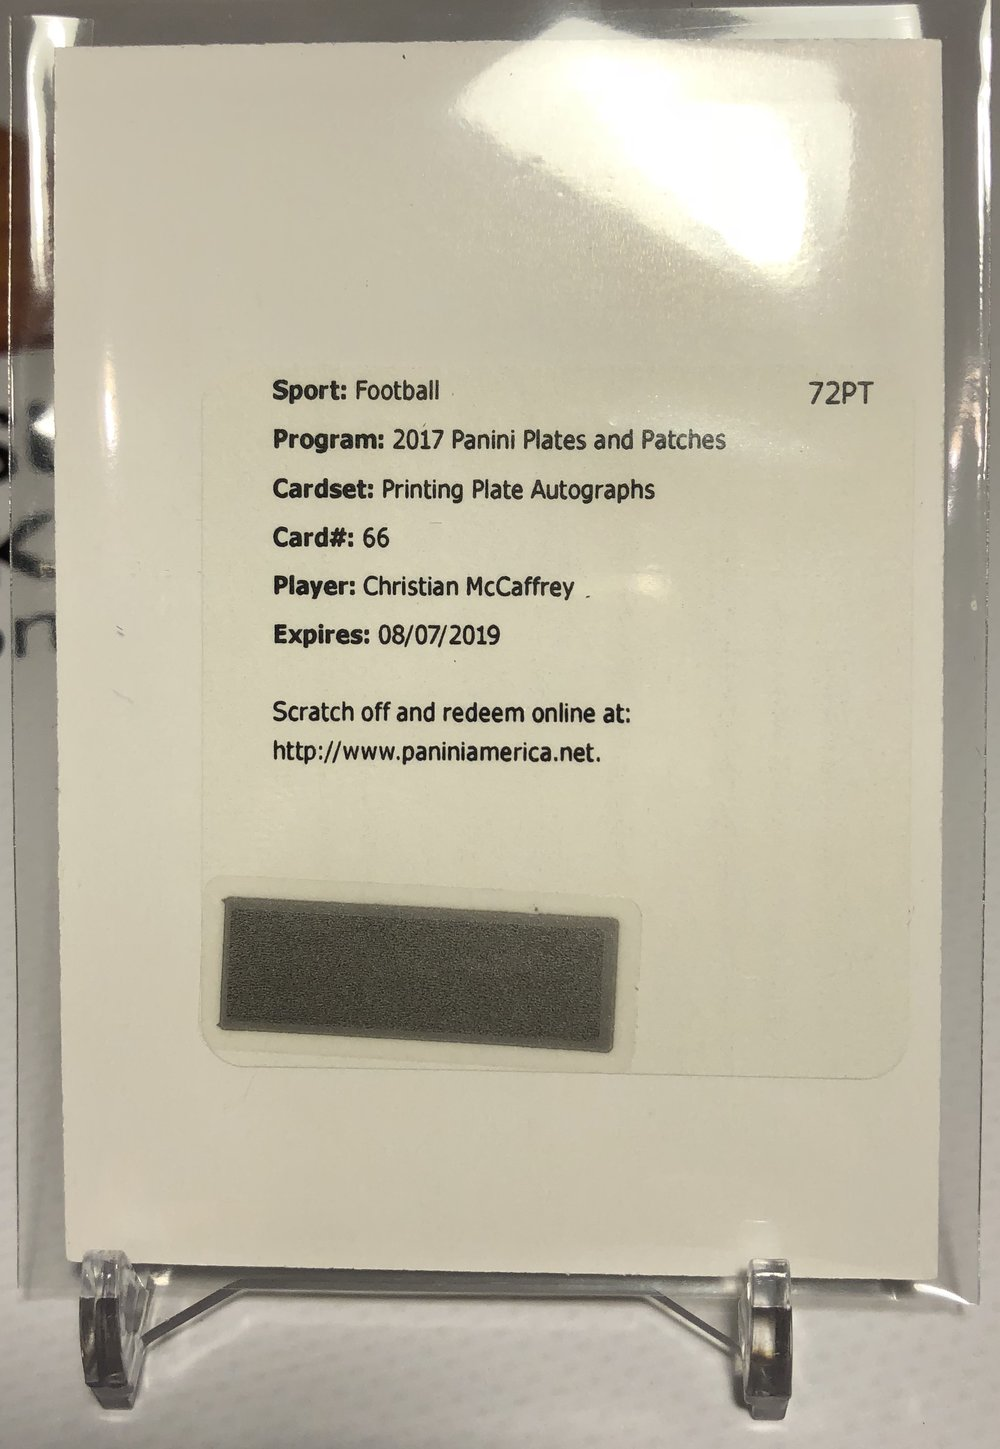 2017 Panini Plates & Patches Christian McCaffrey Printing Plate Autograph 1/1 Redemption